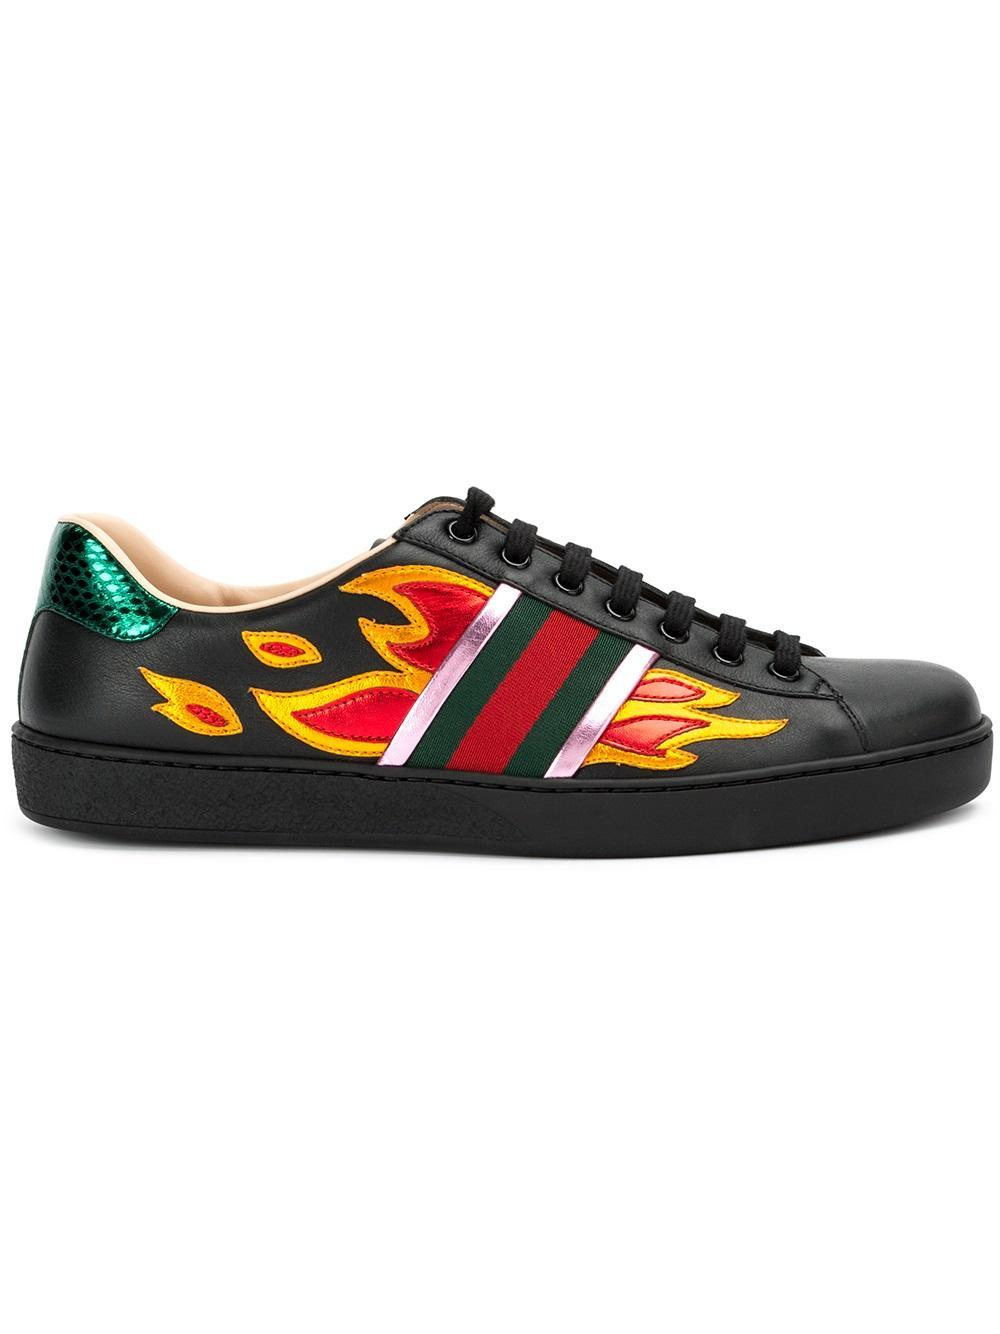 Gucci Leather Ace Flame Sneakers in